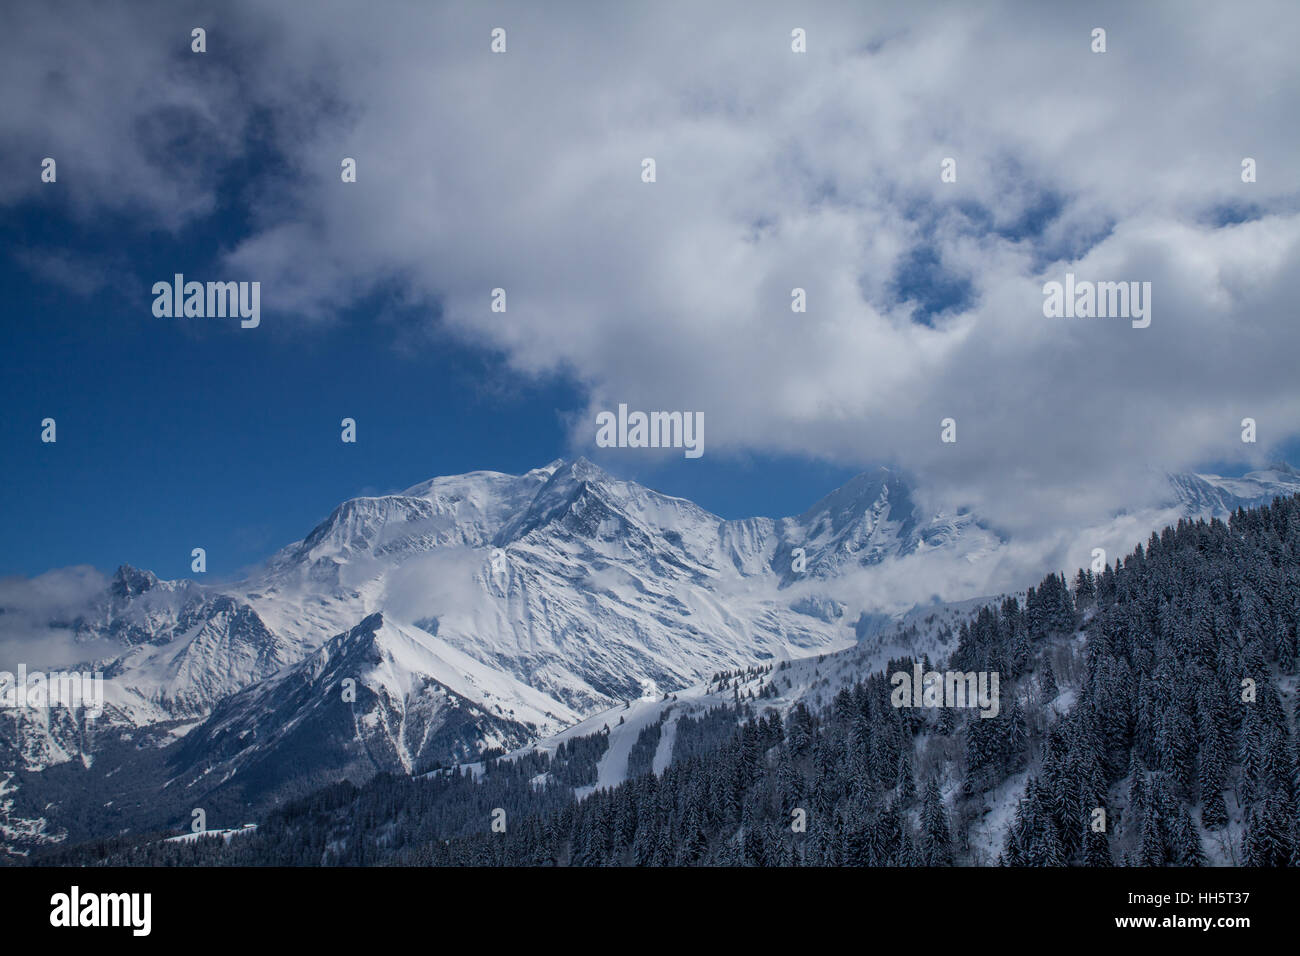 Mont Blanc ski resort - Stock Image